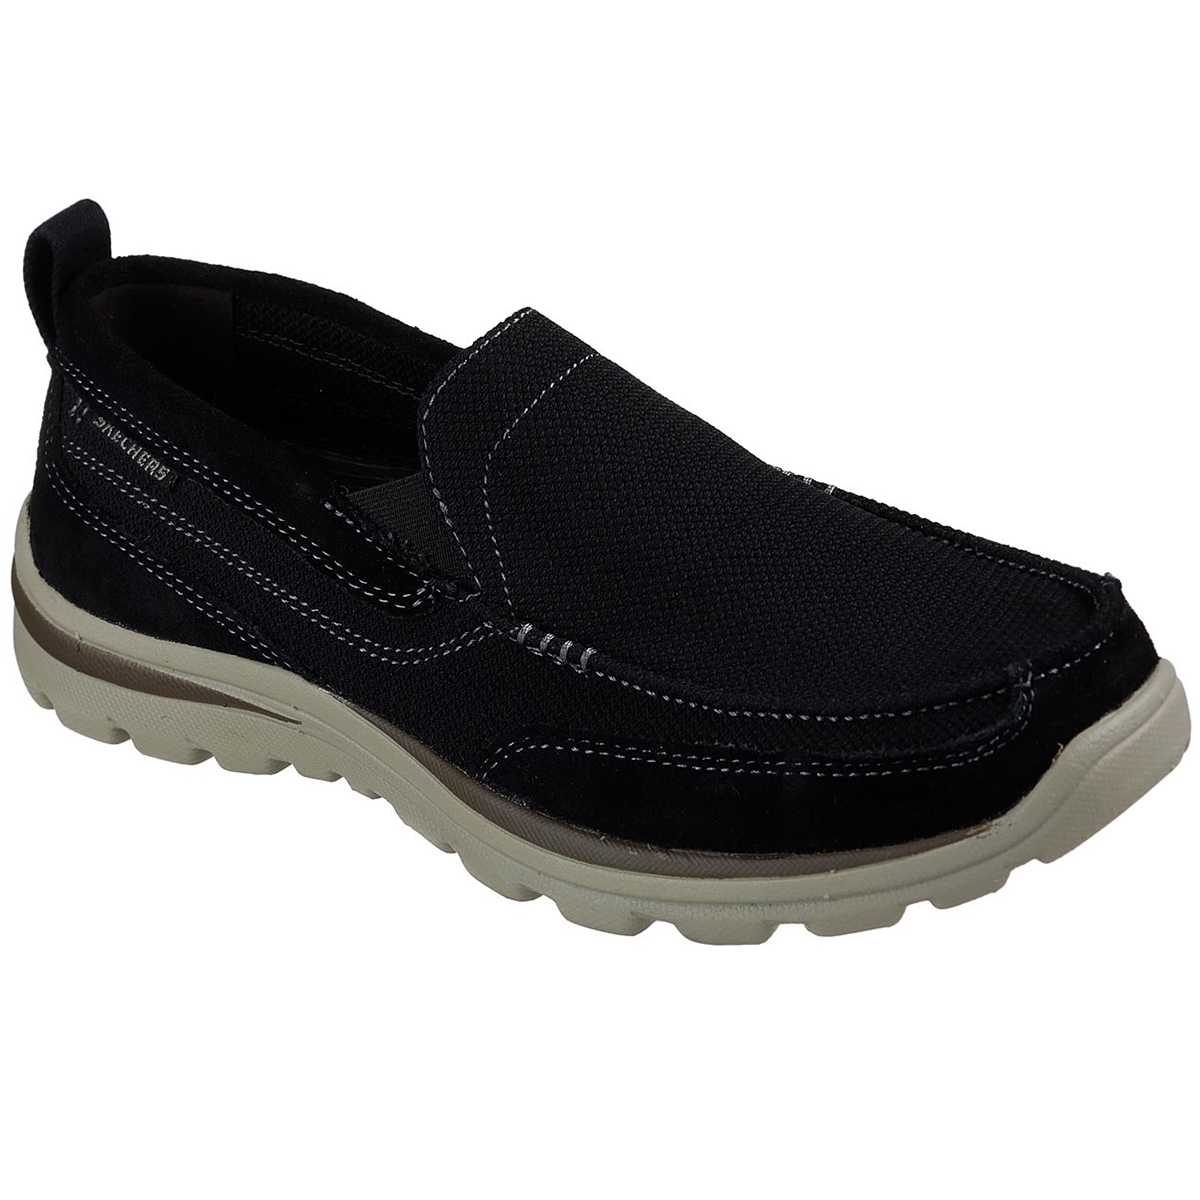 Skechers Men's Relaxed Fit: Superior- Milford Slip-On Shoes - Black, 8.5